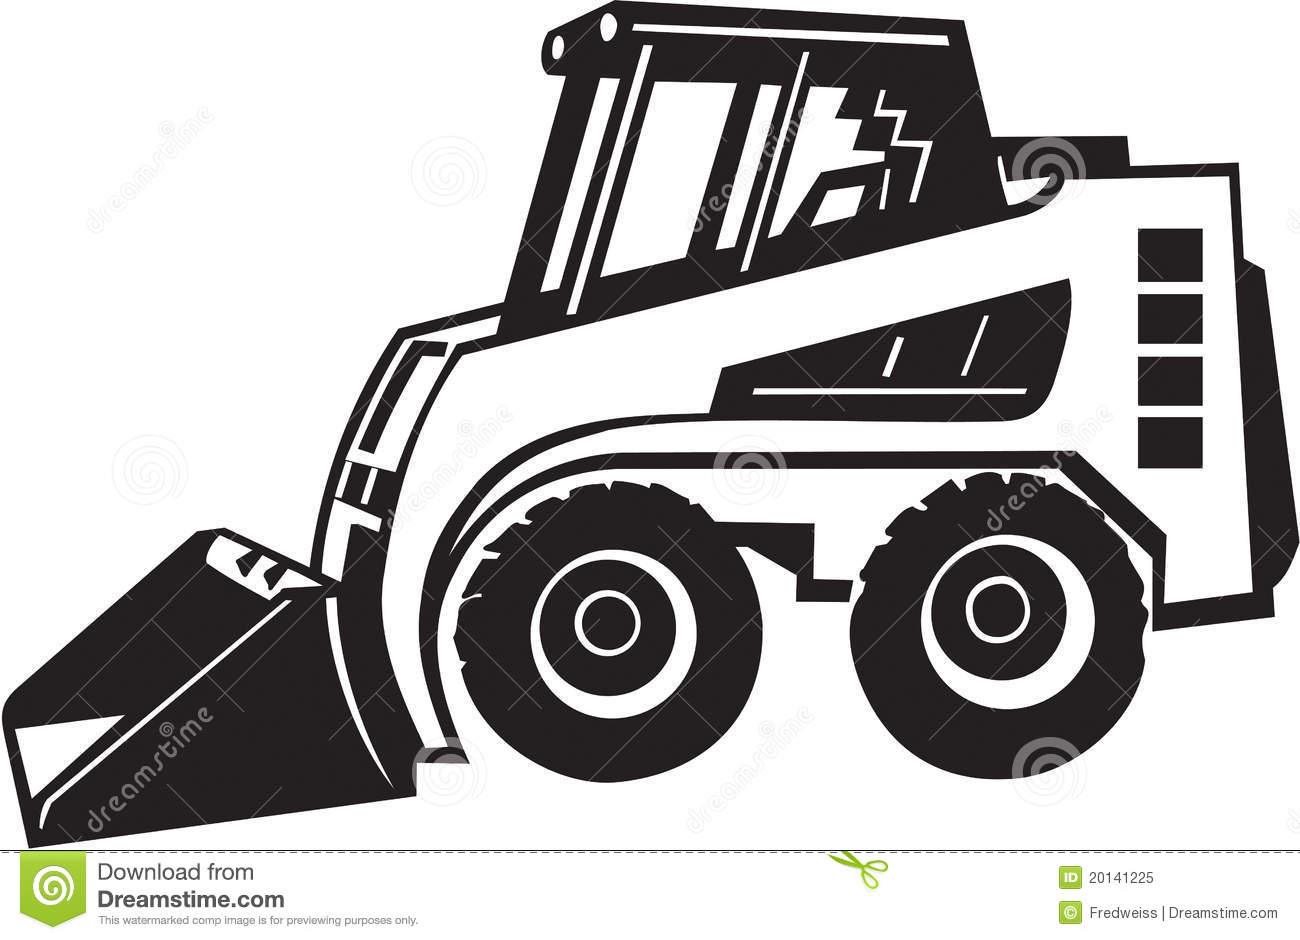 Front Loader Illustration Royalty Free Stock Photo - Image: 20141225